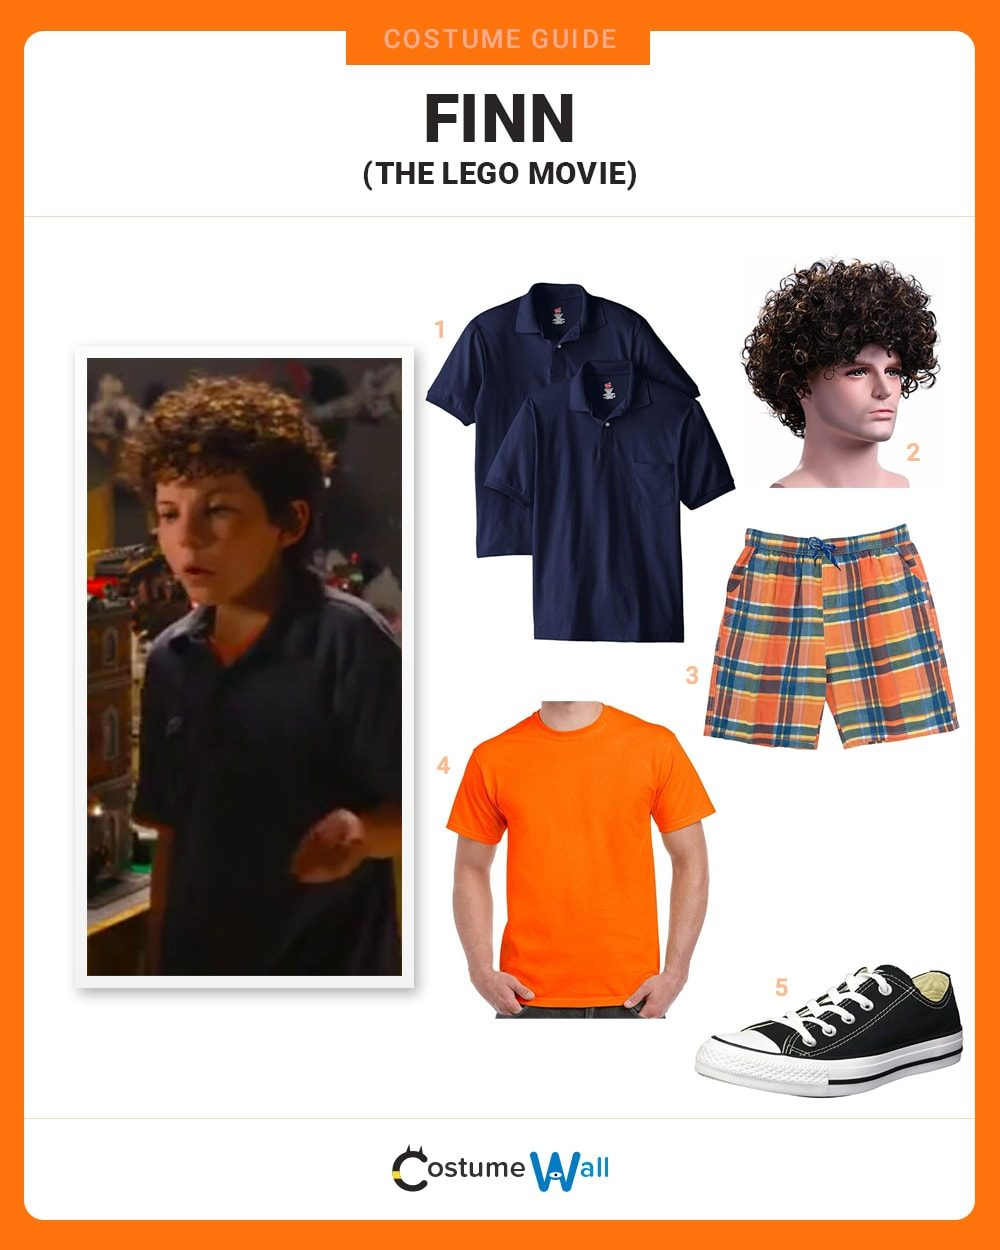 Finn (Lego Movie) Costume Guide